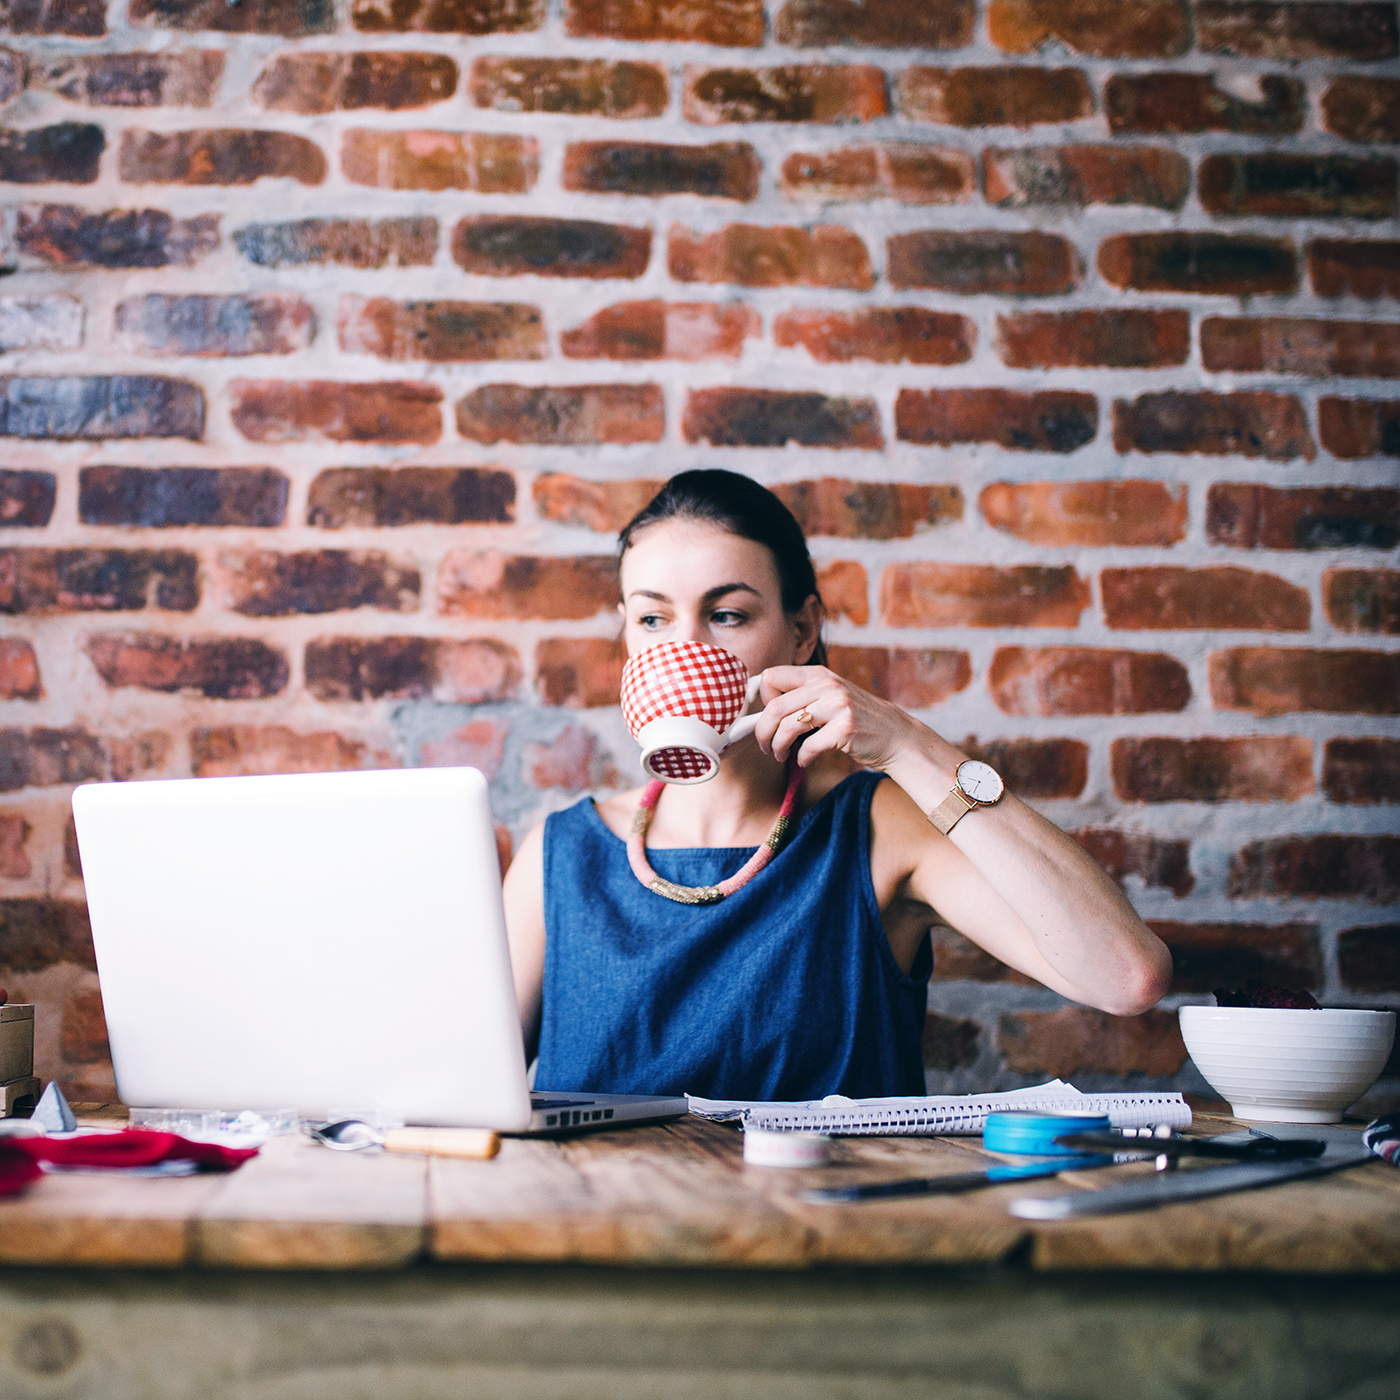 Grab a cup of coffee and get ready to edit together a viral video!